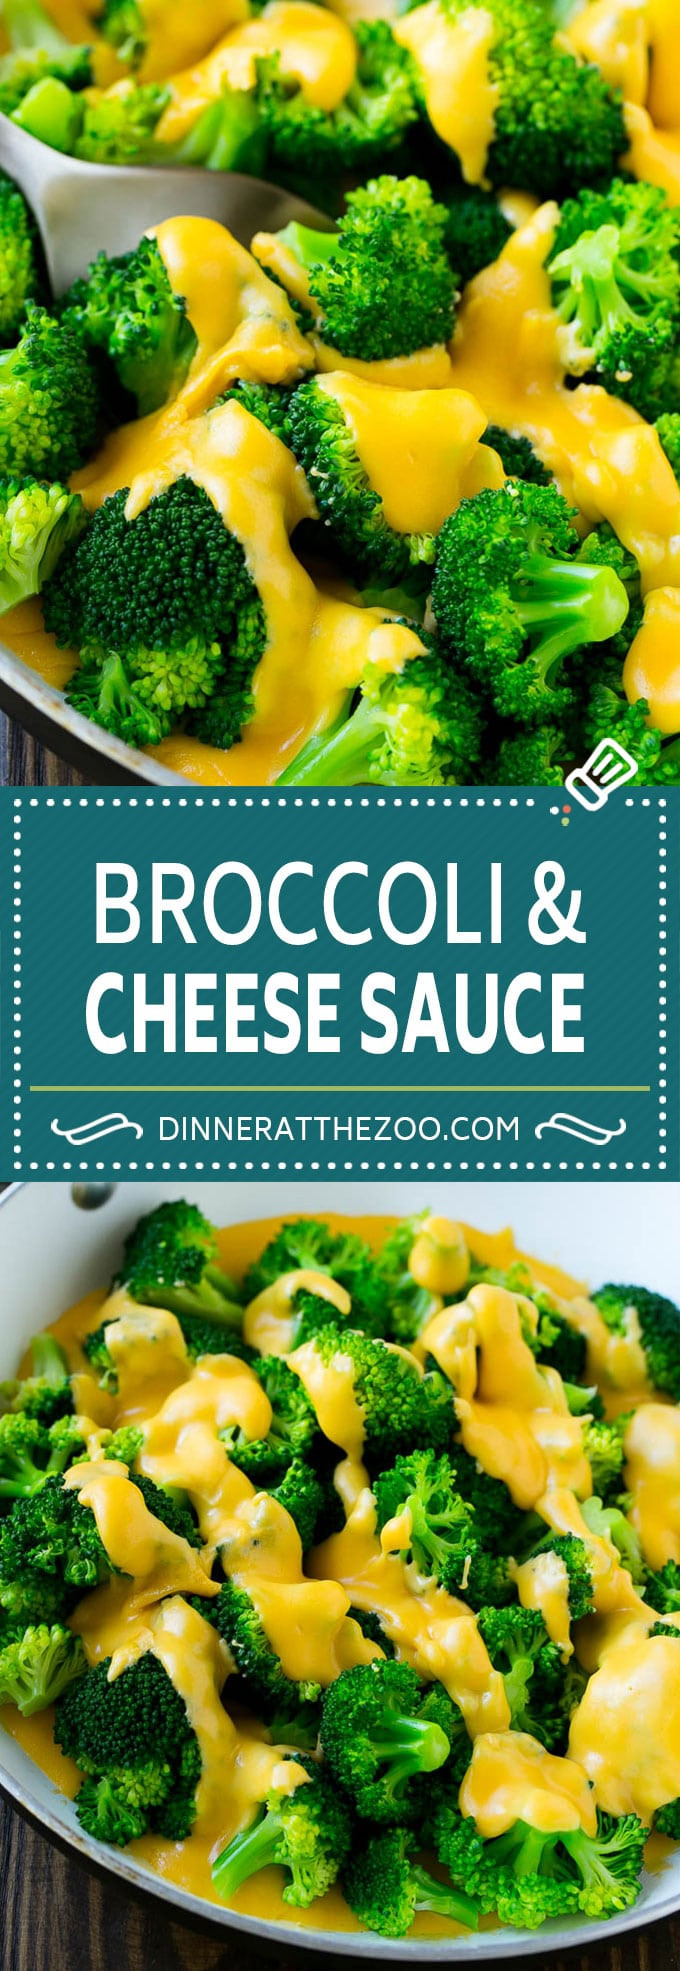 Broccoli Cheese Sauce  Broccoli with Cheese Sauce Dinner at the Zoo